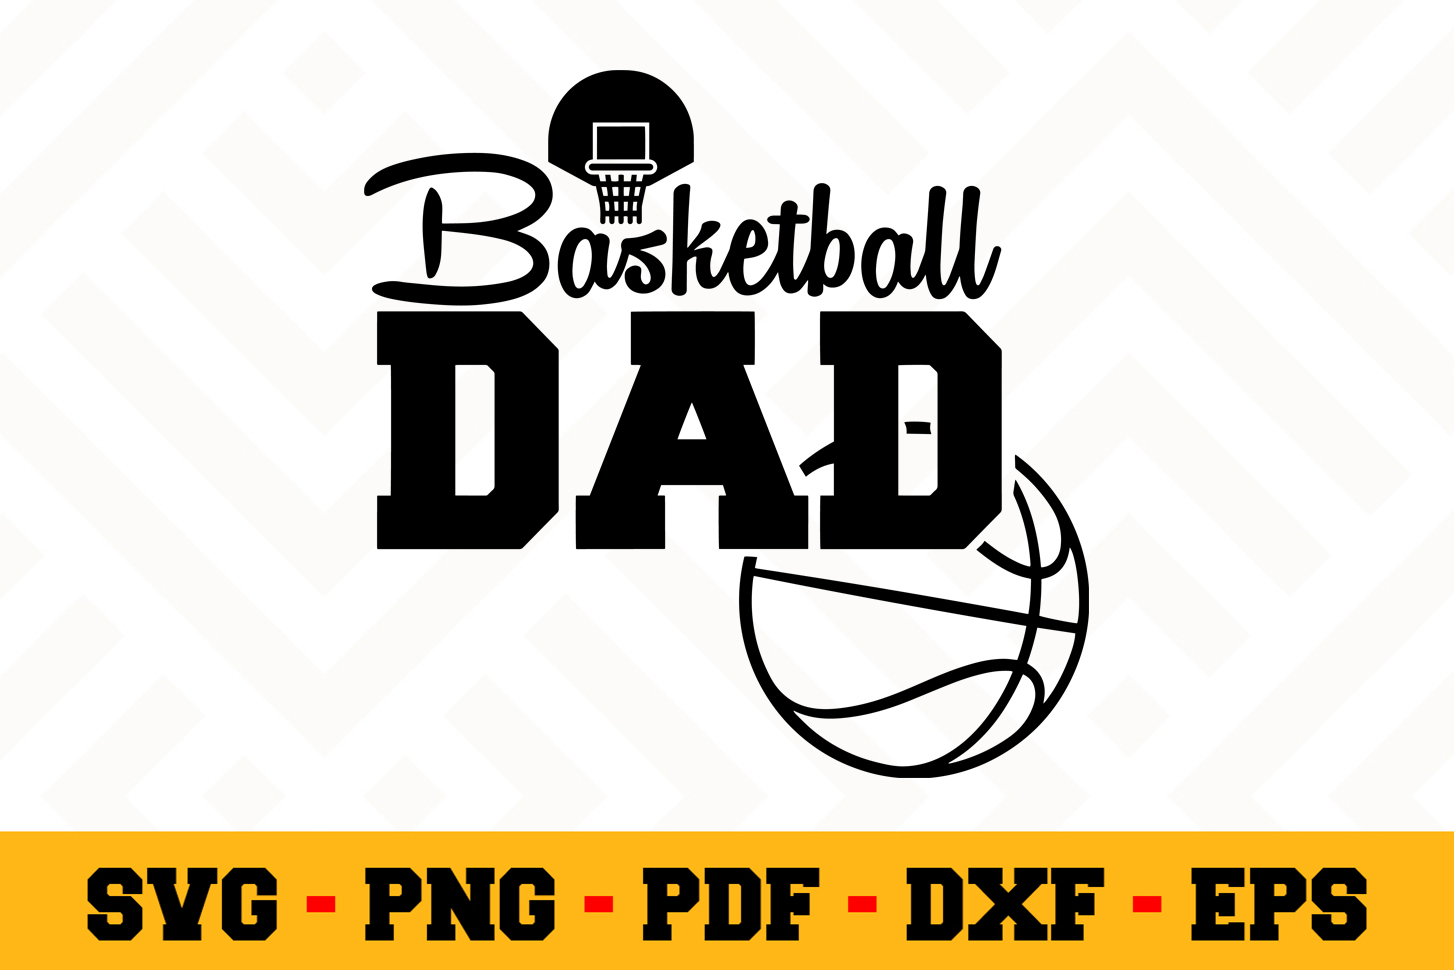 Basketball SVG Design n567 | Basketball SVG Cut File example image 1